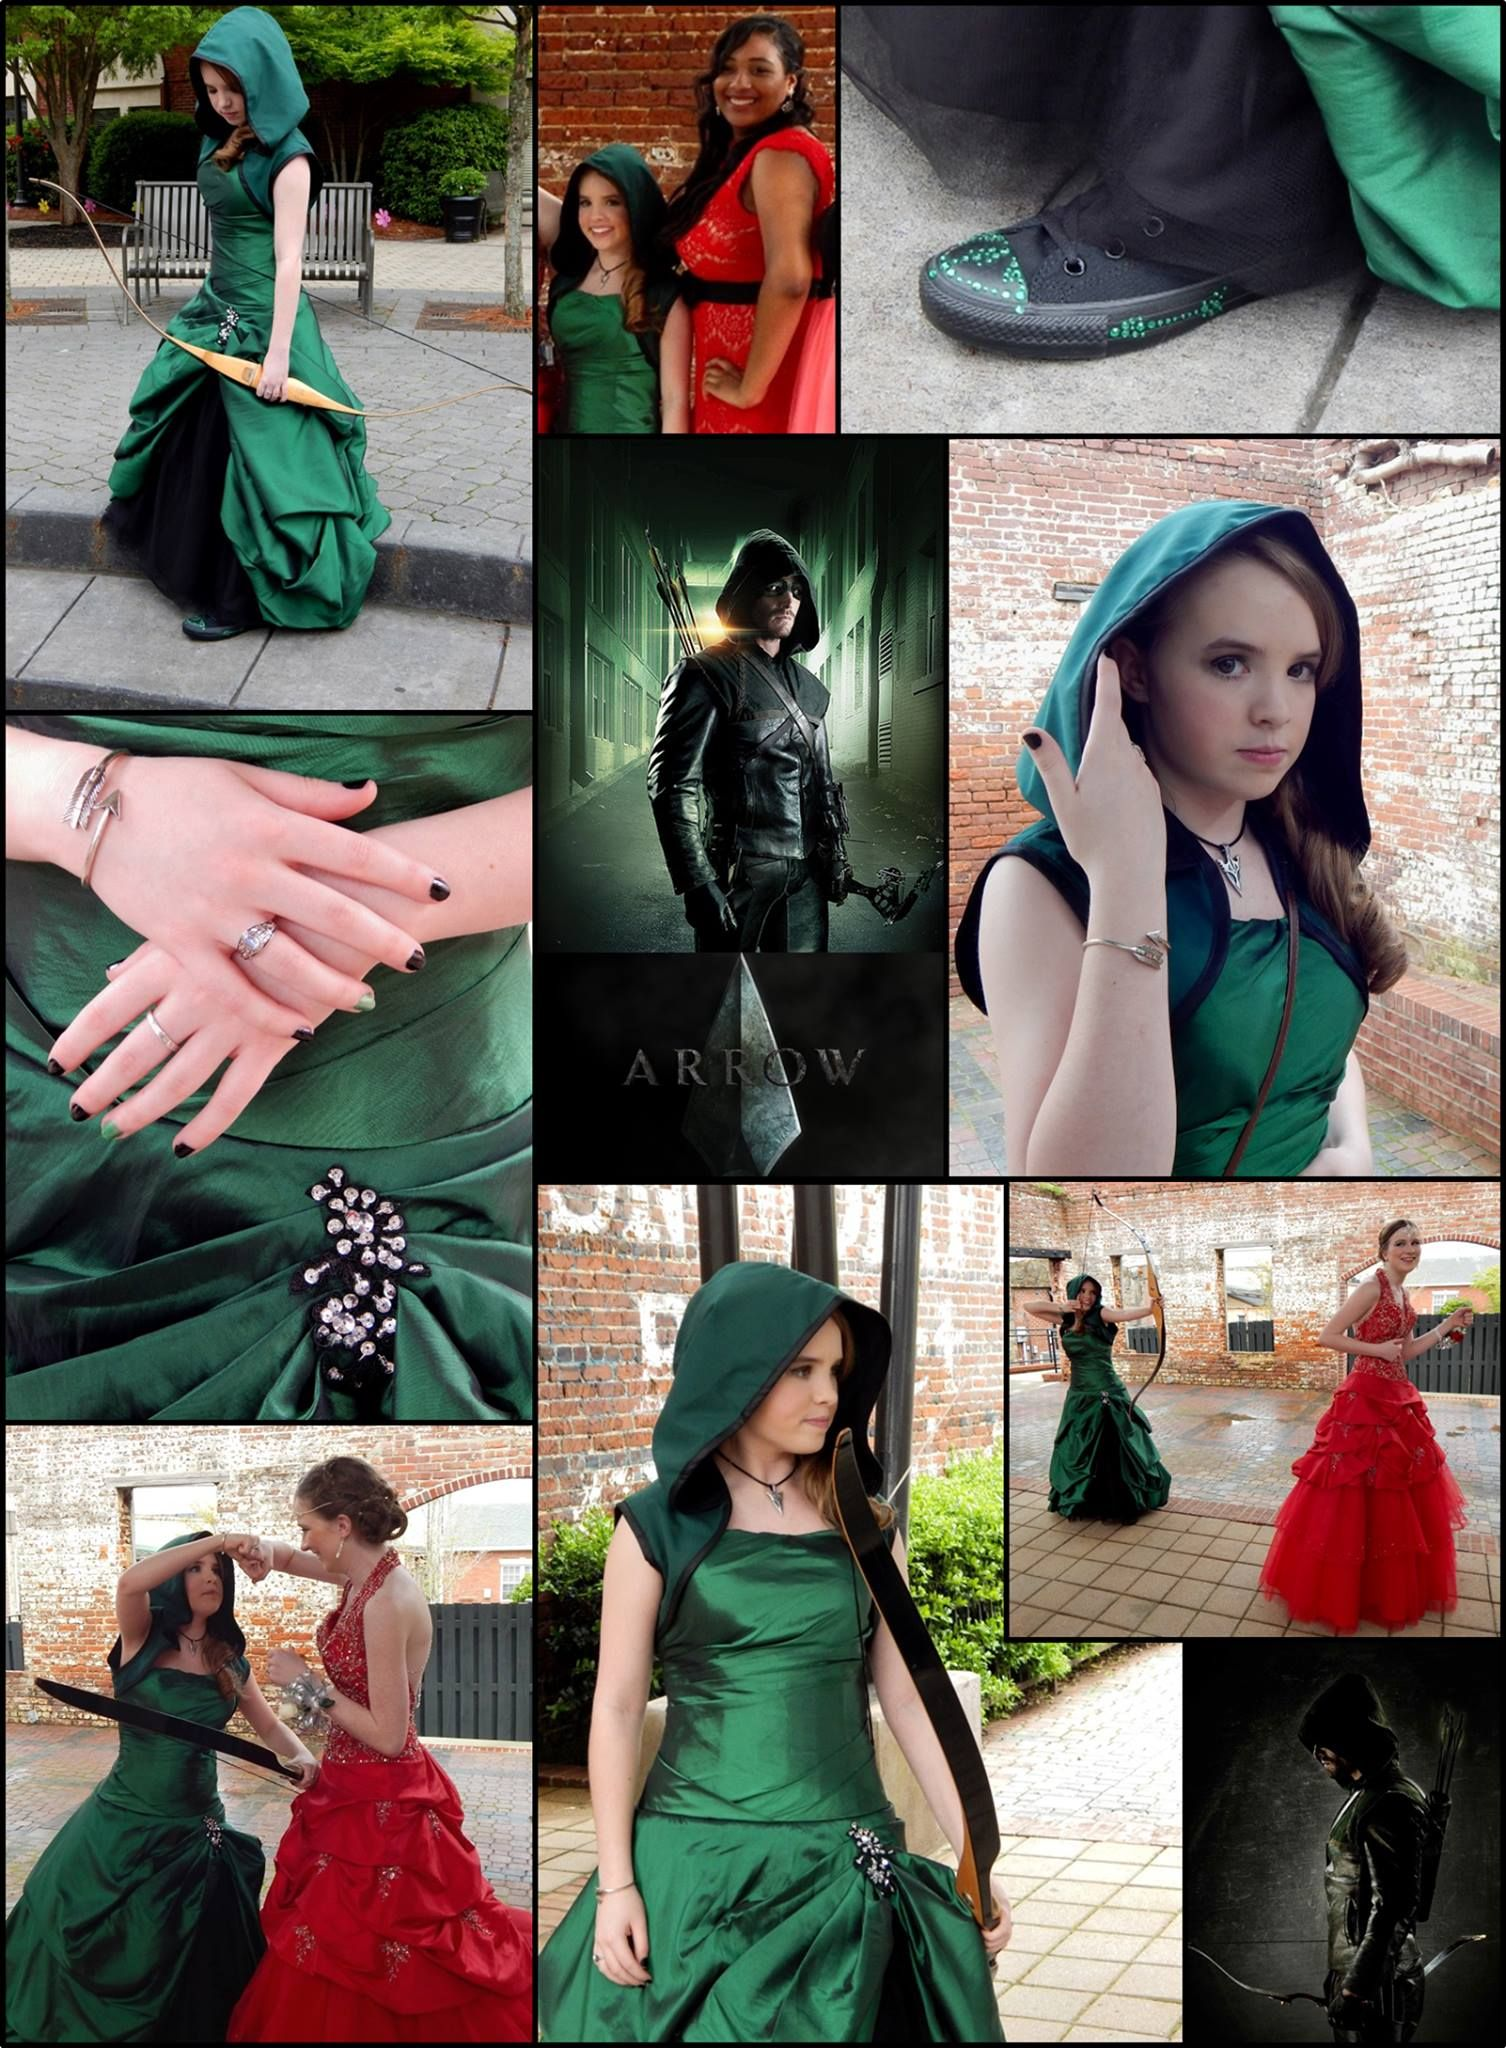 arrow prom dress so awesome! Totally doing something like this for prom  next year!